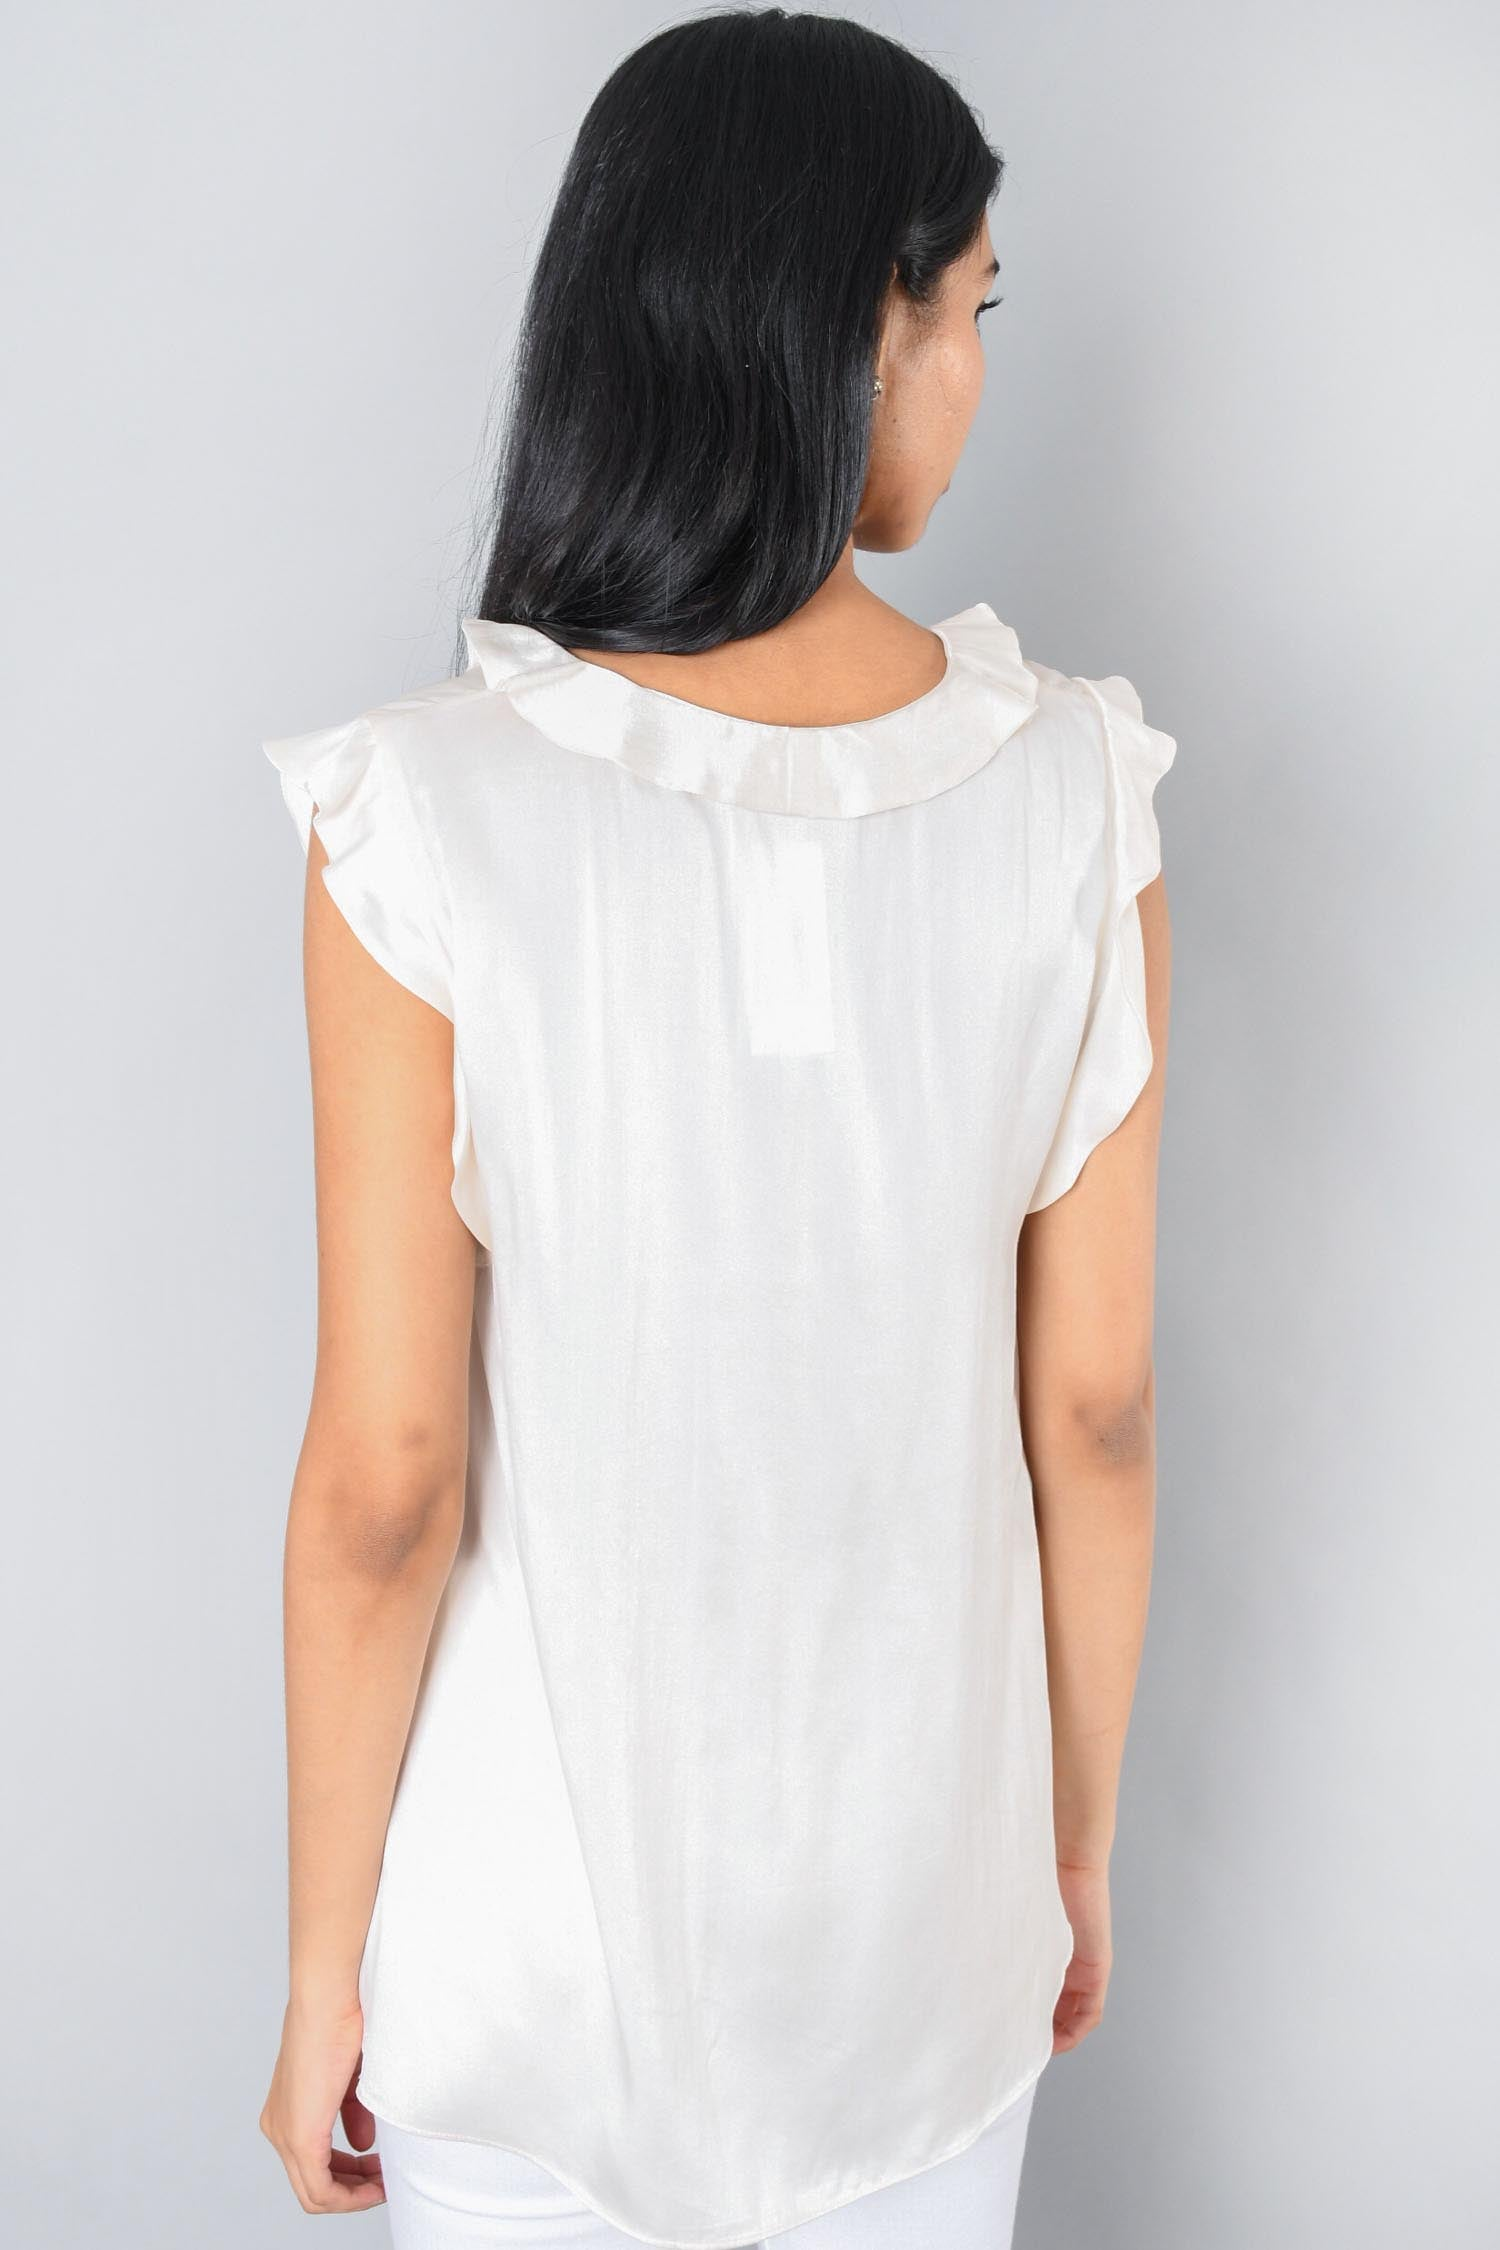 Zimmermann Cream Silk Ruffled Top Size 2